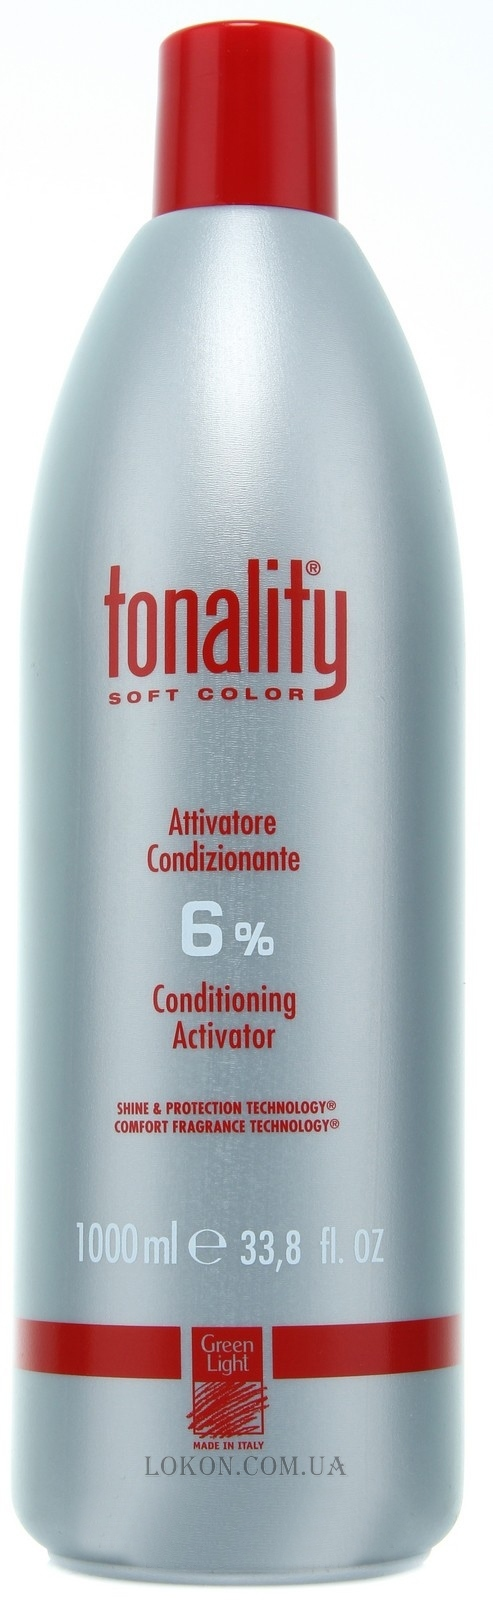 GREEN LIGHT Tonality Conditioning Activator 6% - Кондиционер-активатор 6%